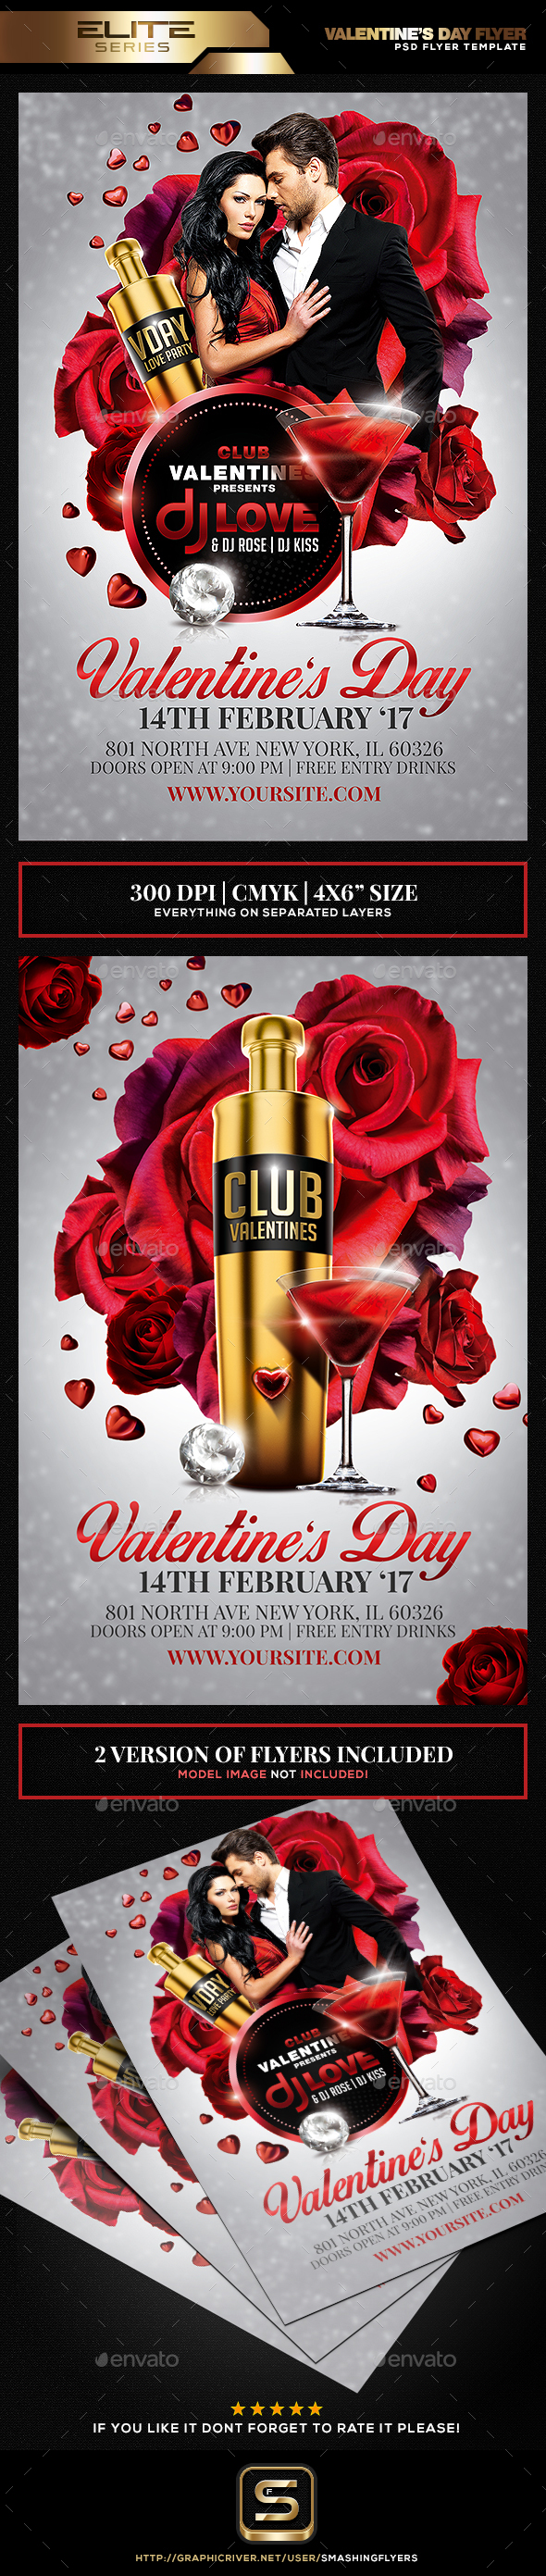 Valentine's Day Flyer Template - Clubs & Parties Events